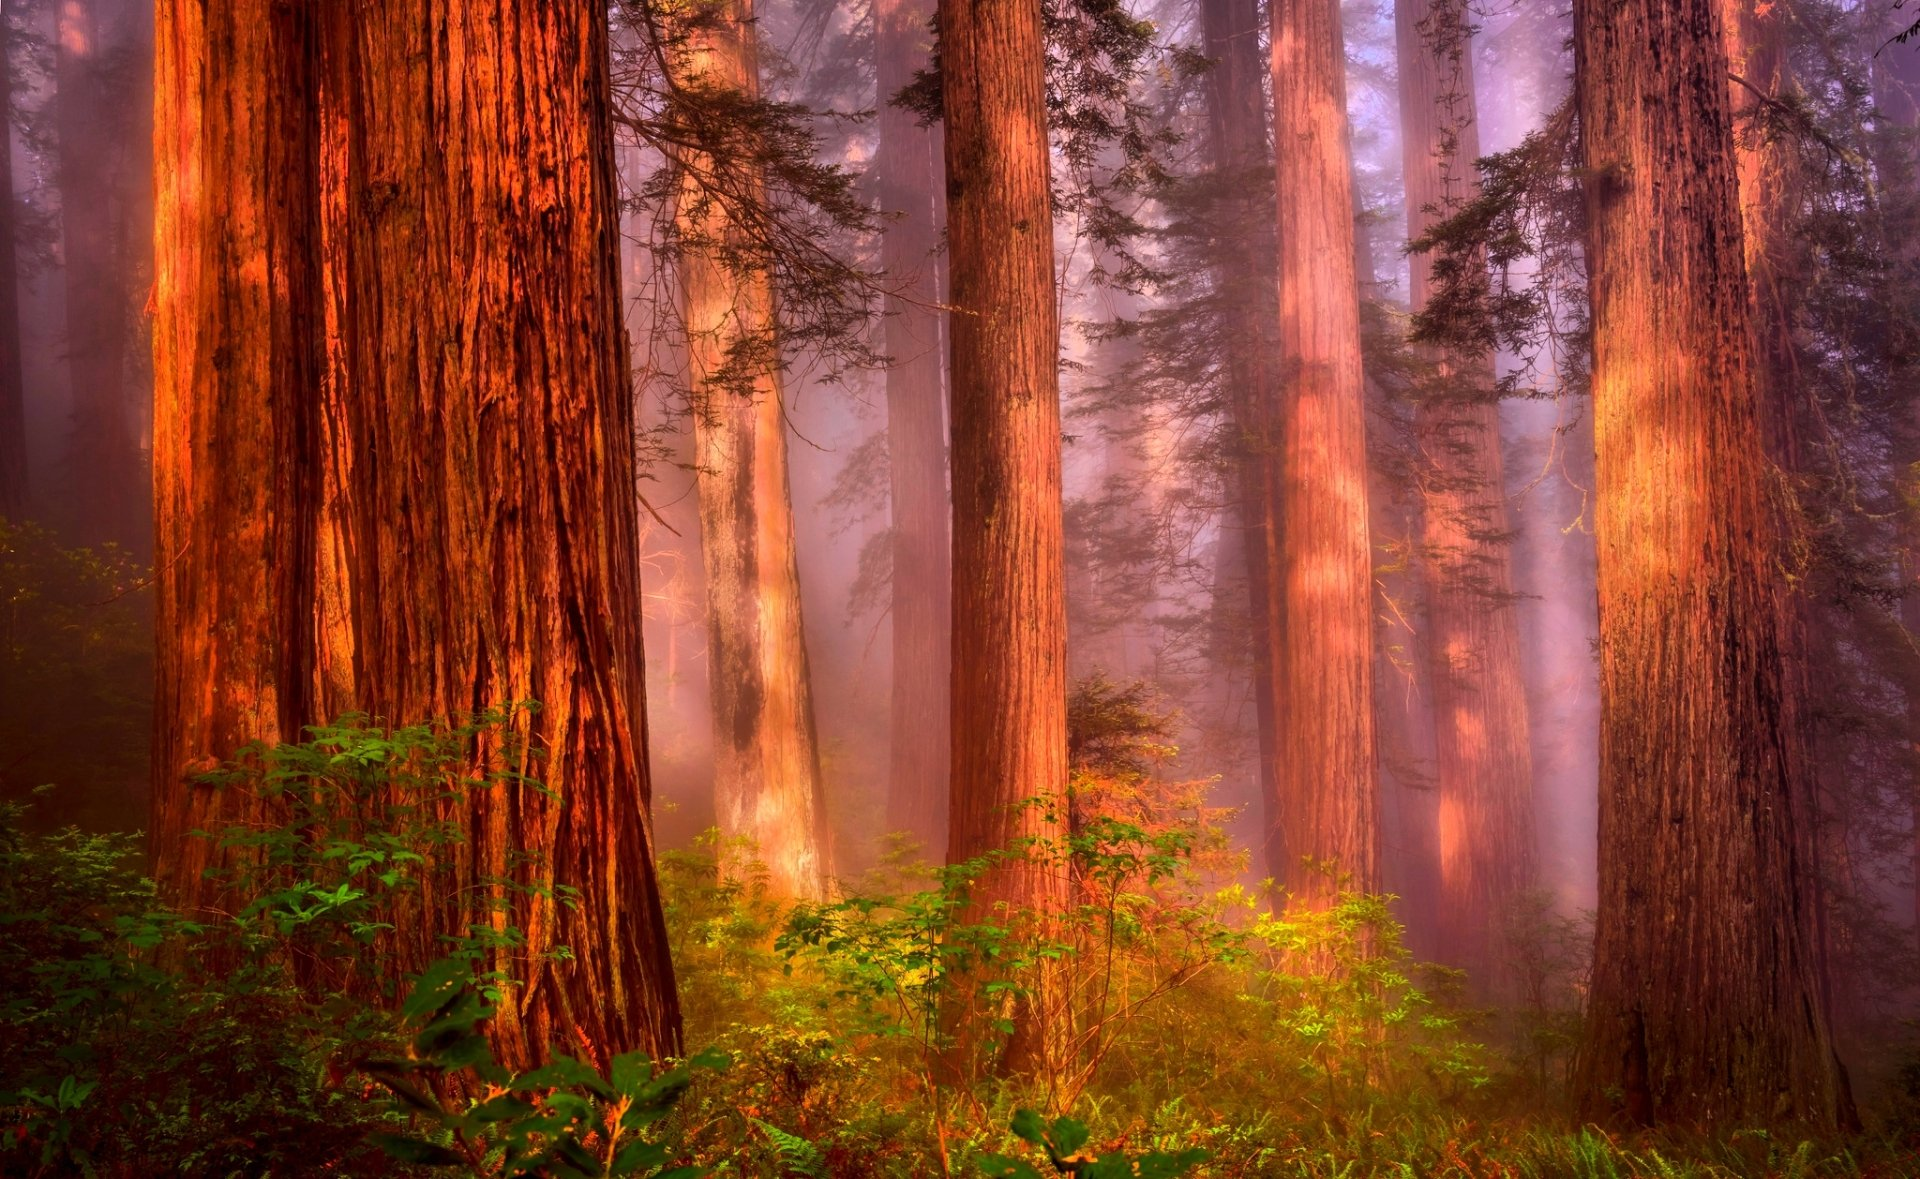 Misty Redwood Forest Hd Wallpaper Background Image